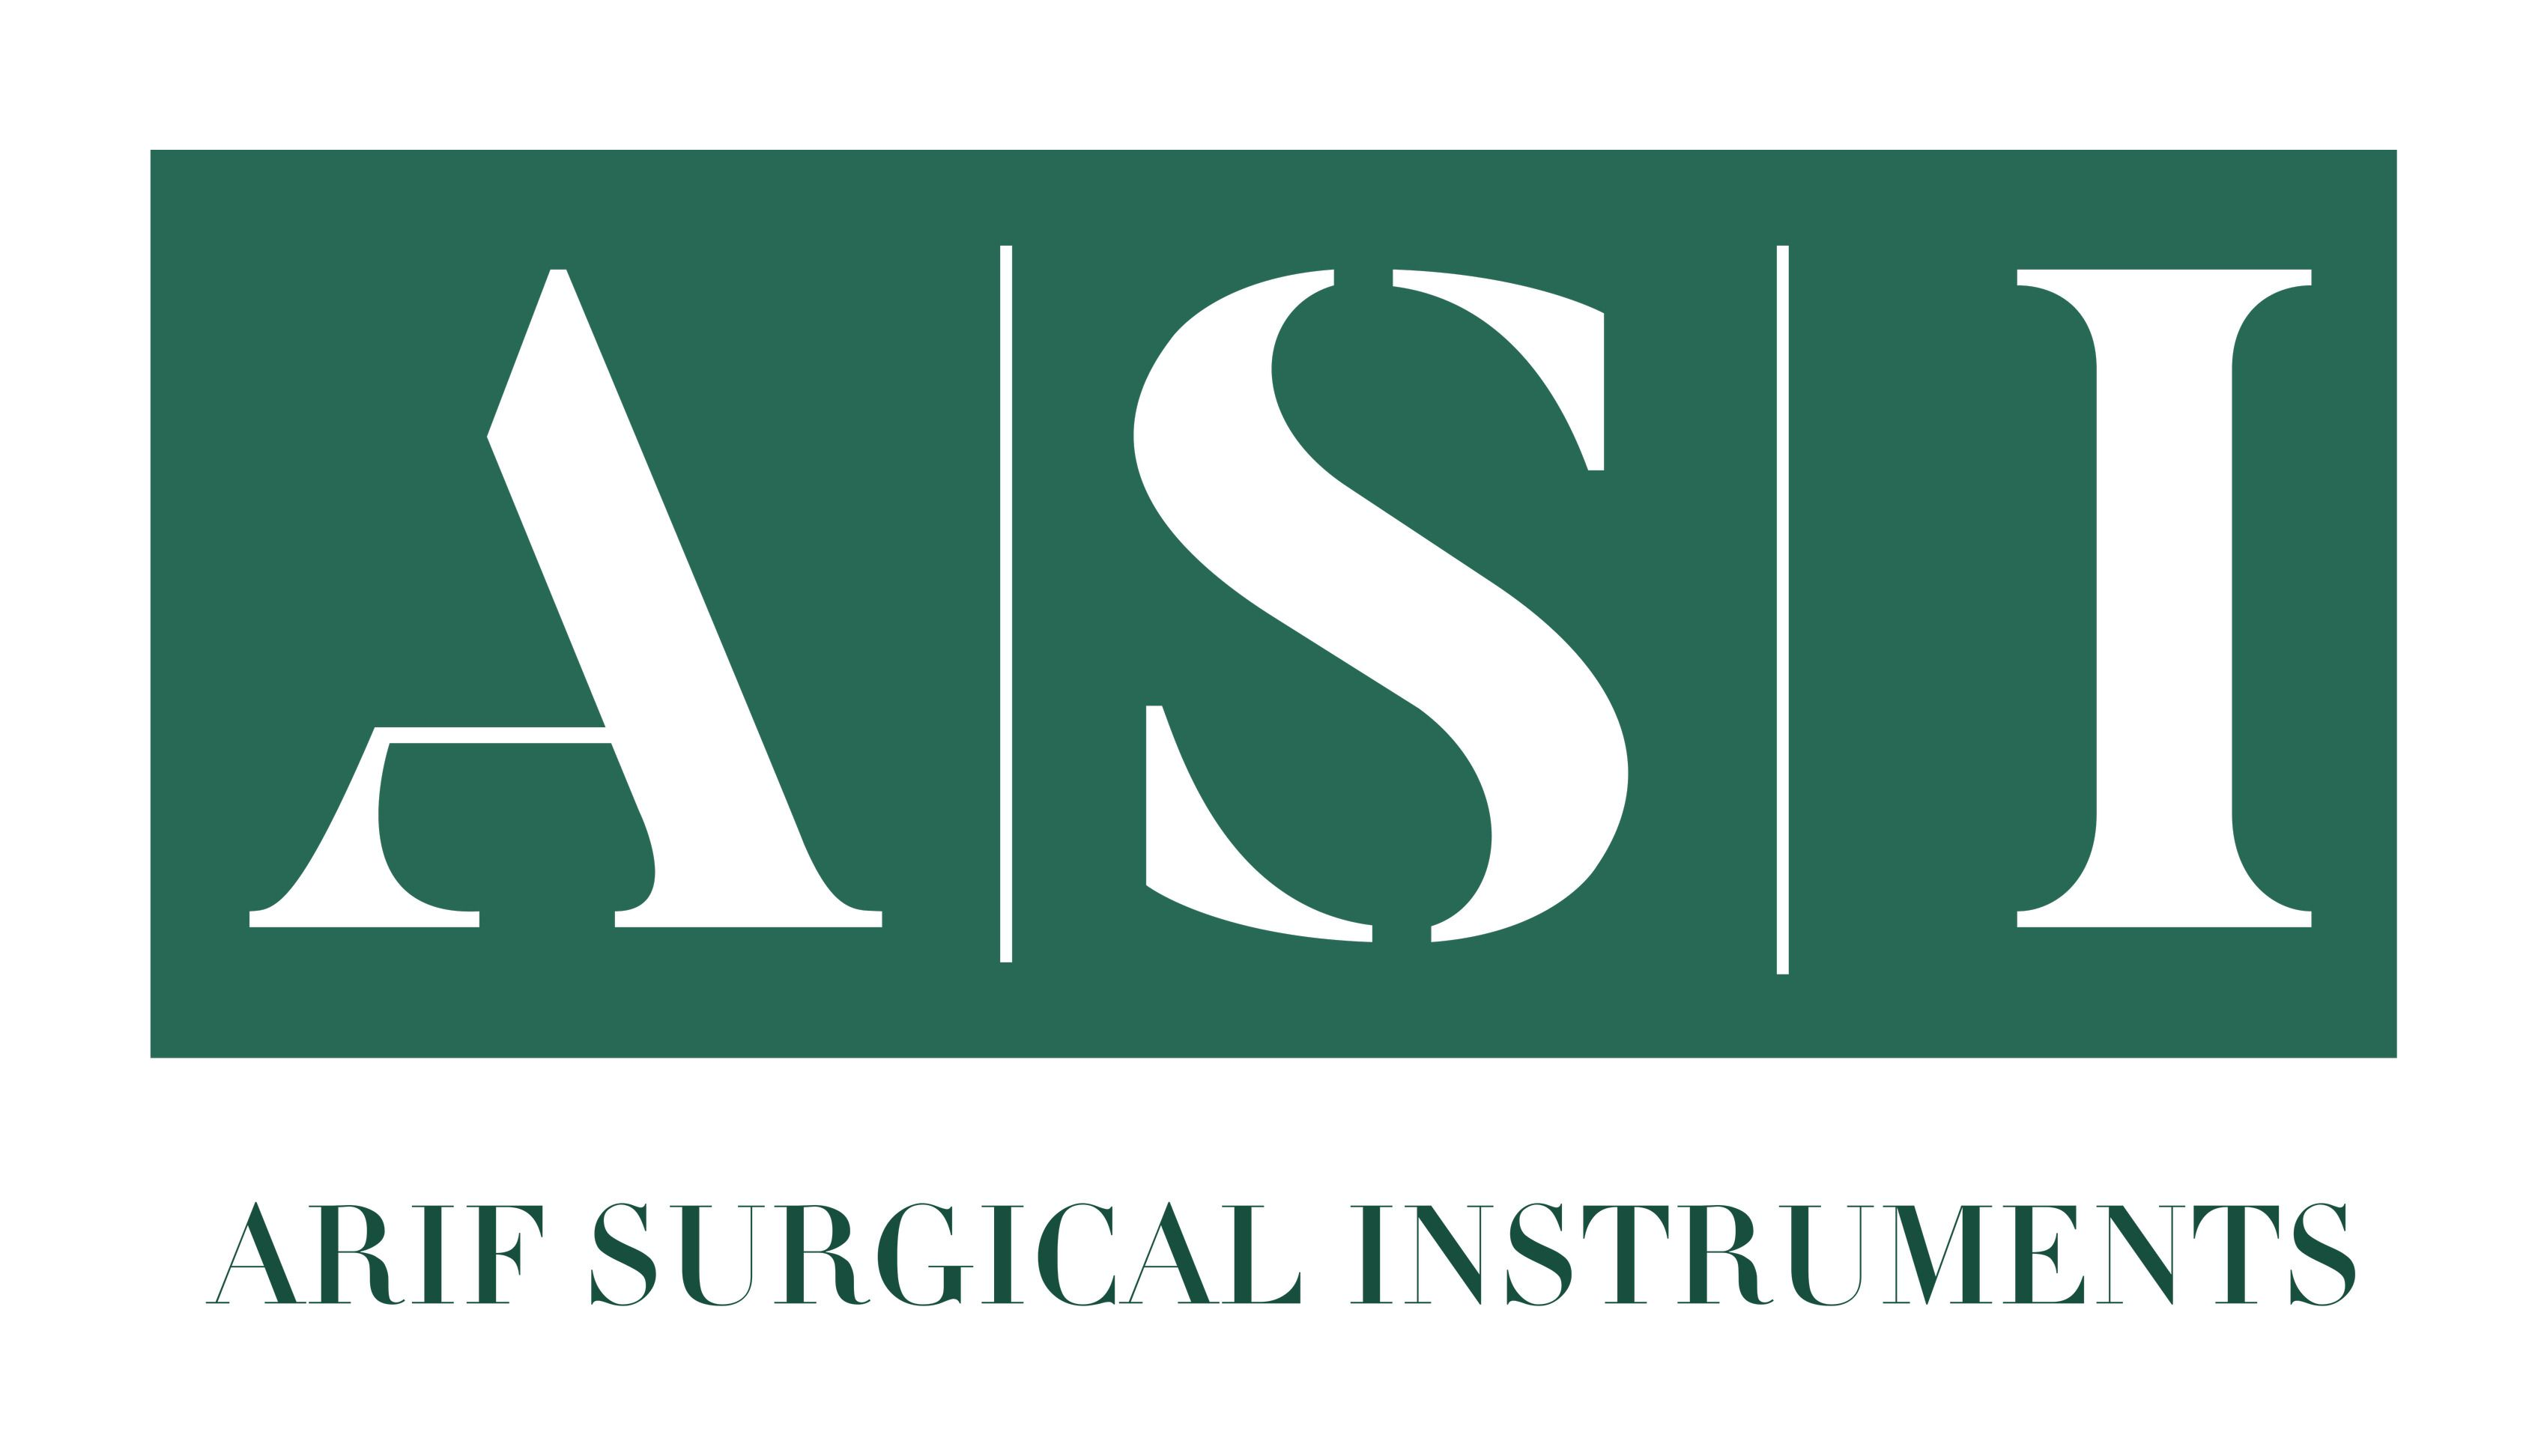 Arif Surgical Instruments